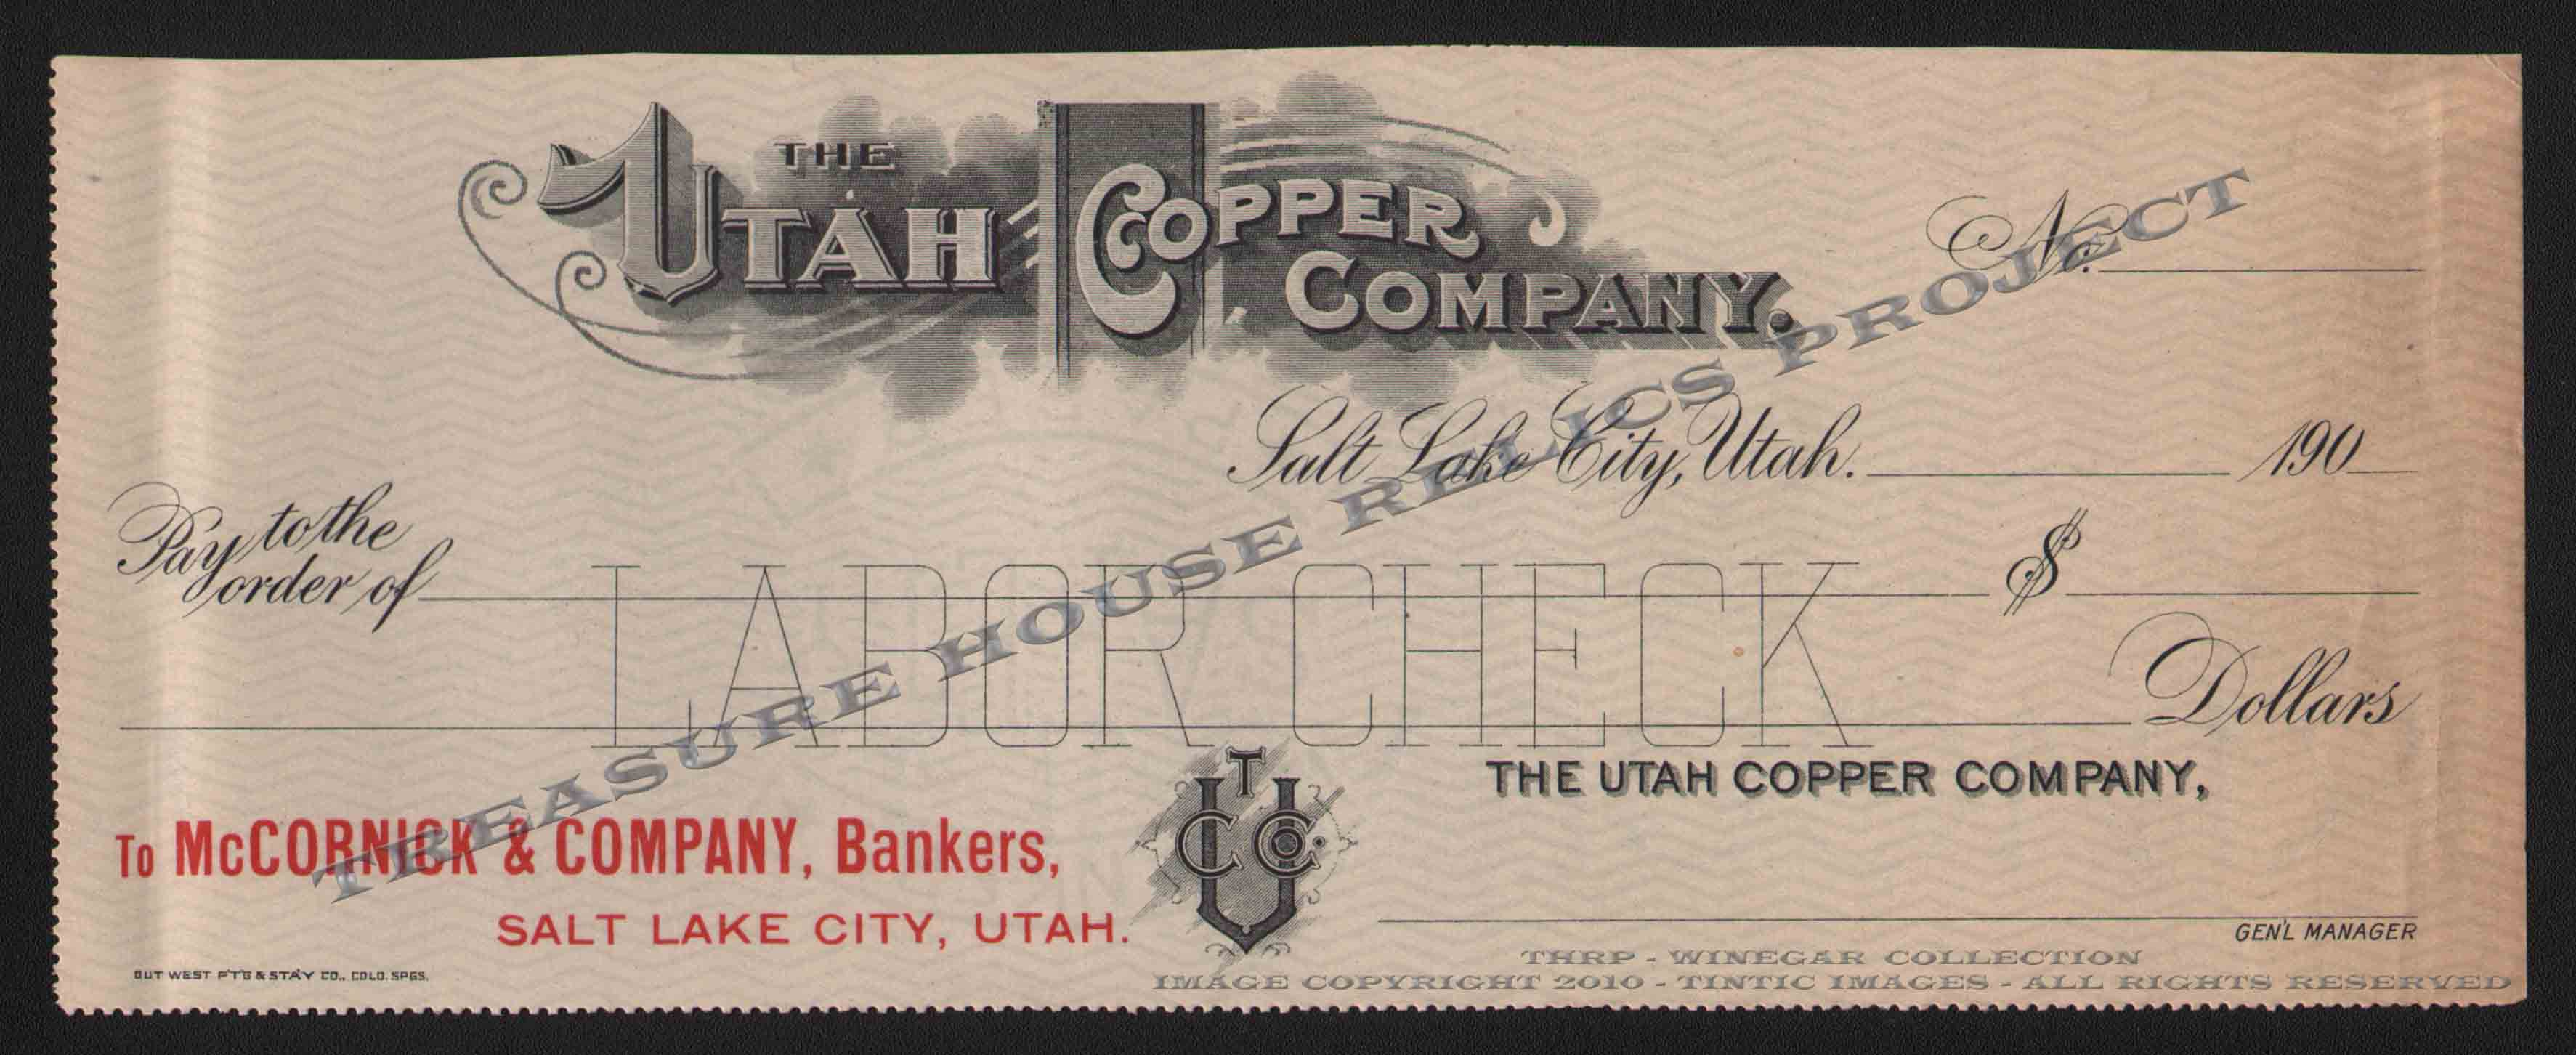 CHECK_-_UTAH_COPPER_CO_LABOR_CHECK_-_NO_NUM_400_Inv_8689_EMBOSS.jpg